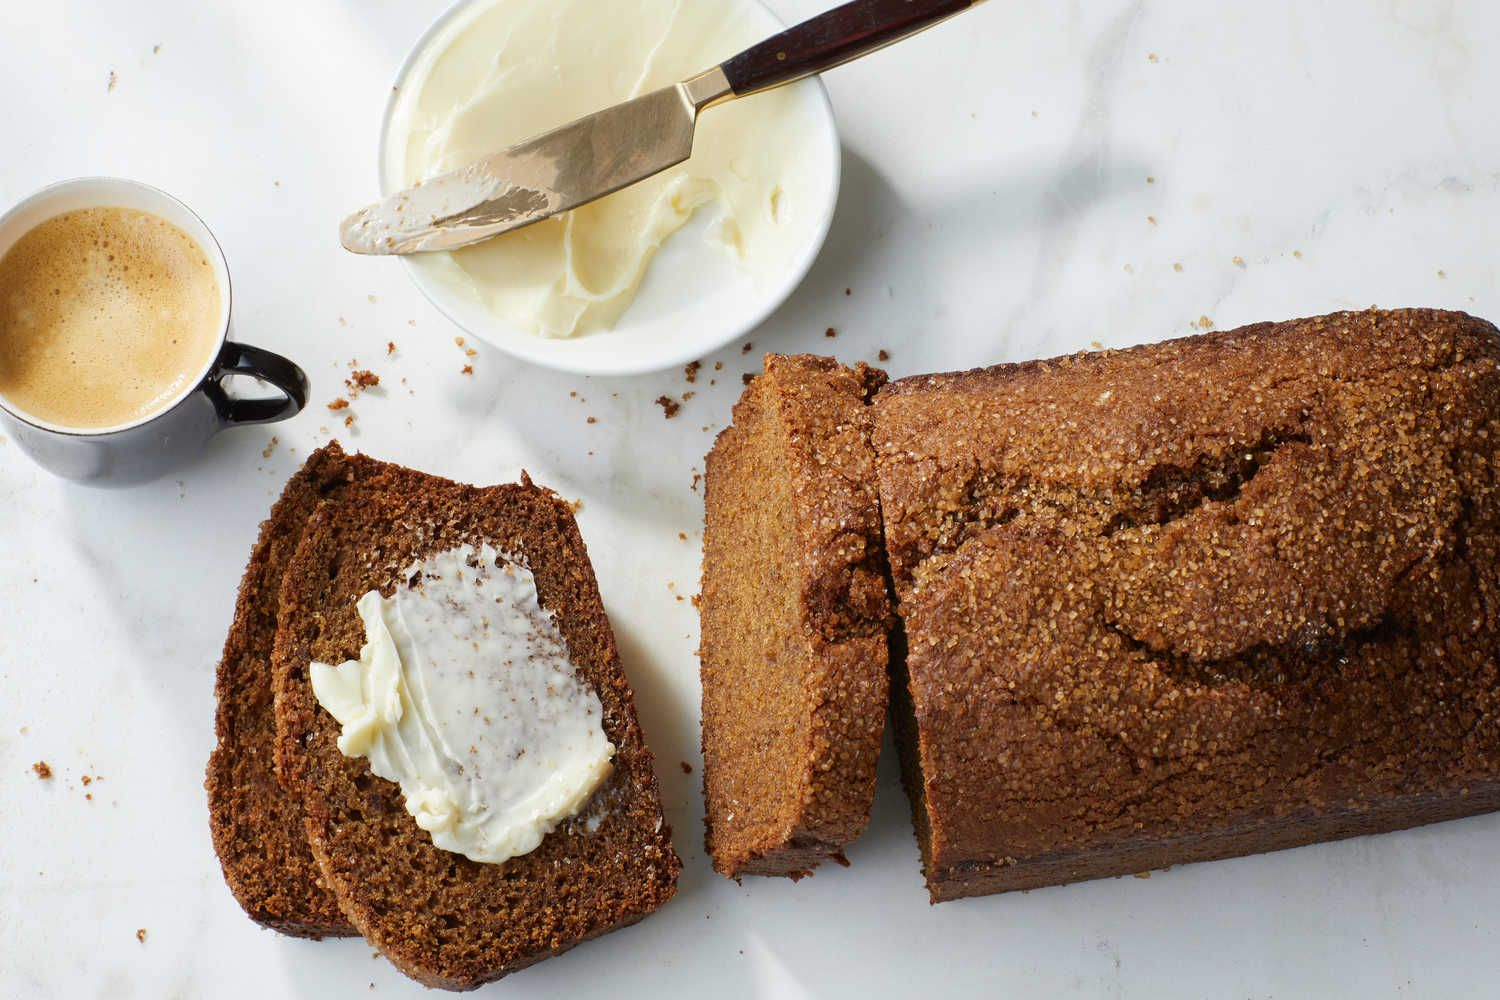 Apple butter gives this bread a deep autumnal flavor and